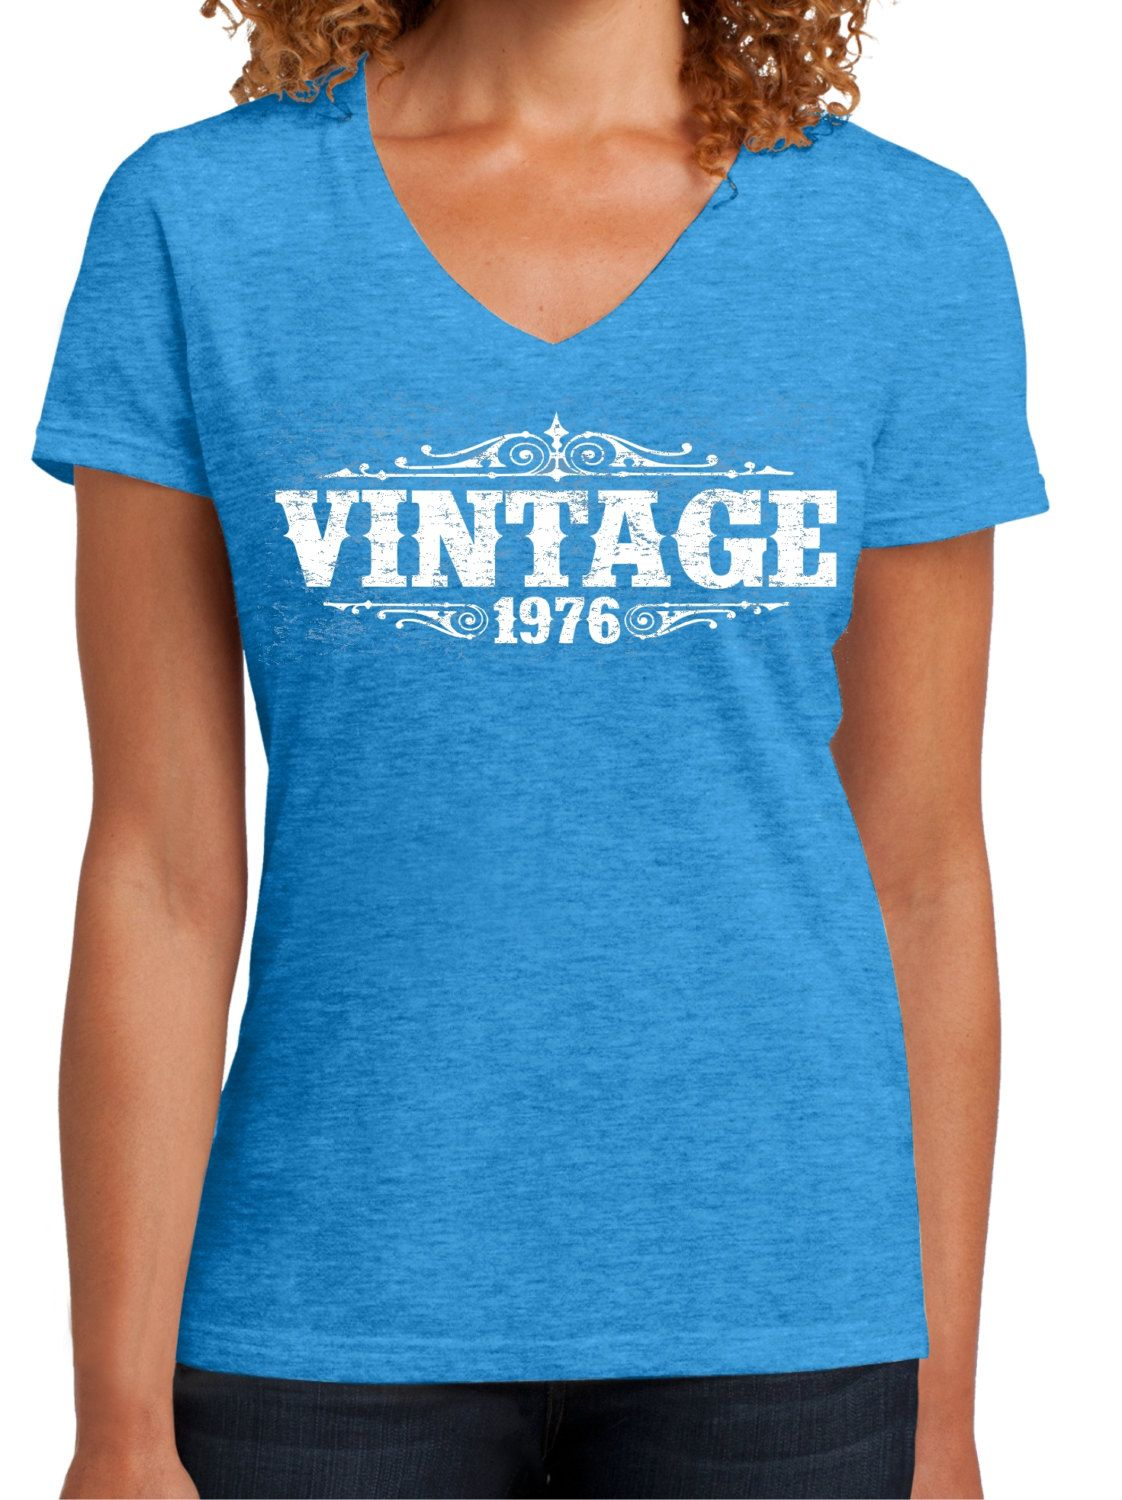 40 Years Old WOMENS VINTAGE 1976 TEE 40th Birthday For Her Shirt Mom Is By BluYeti On Etsy